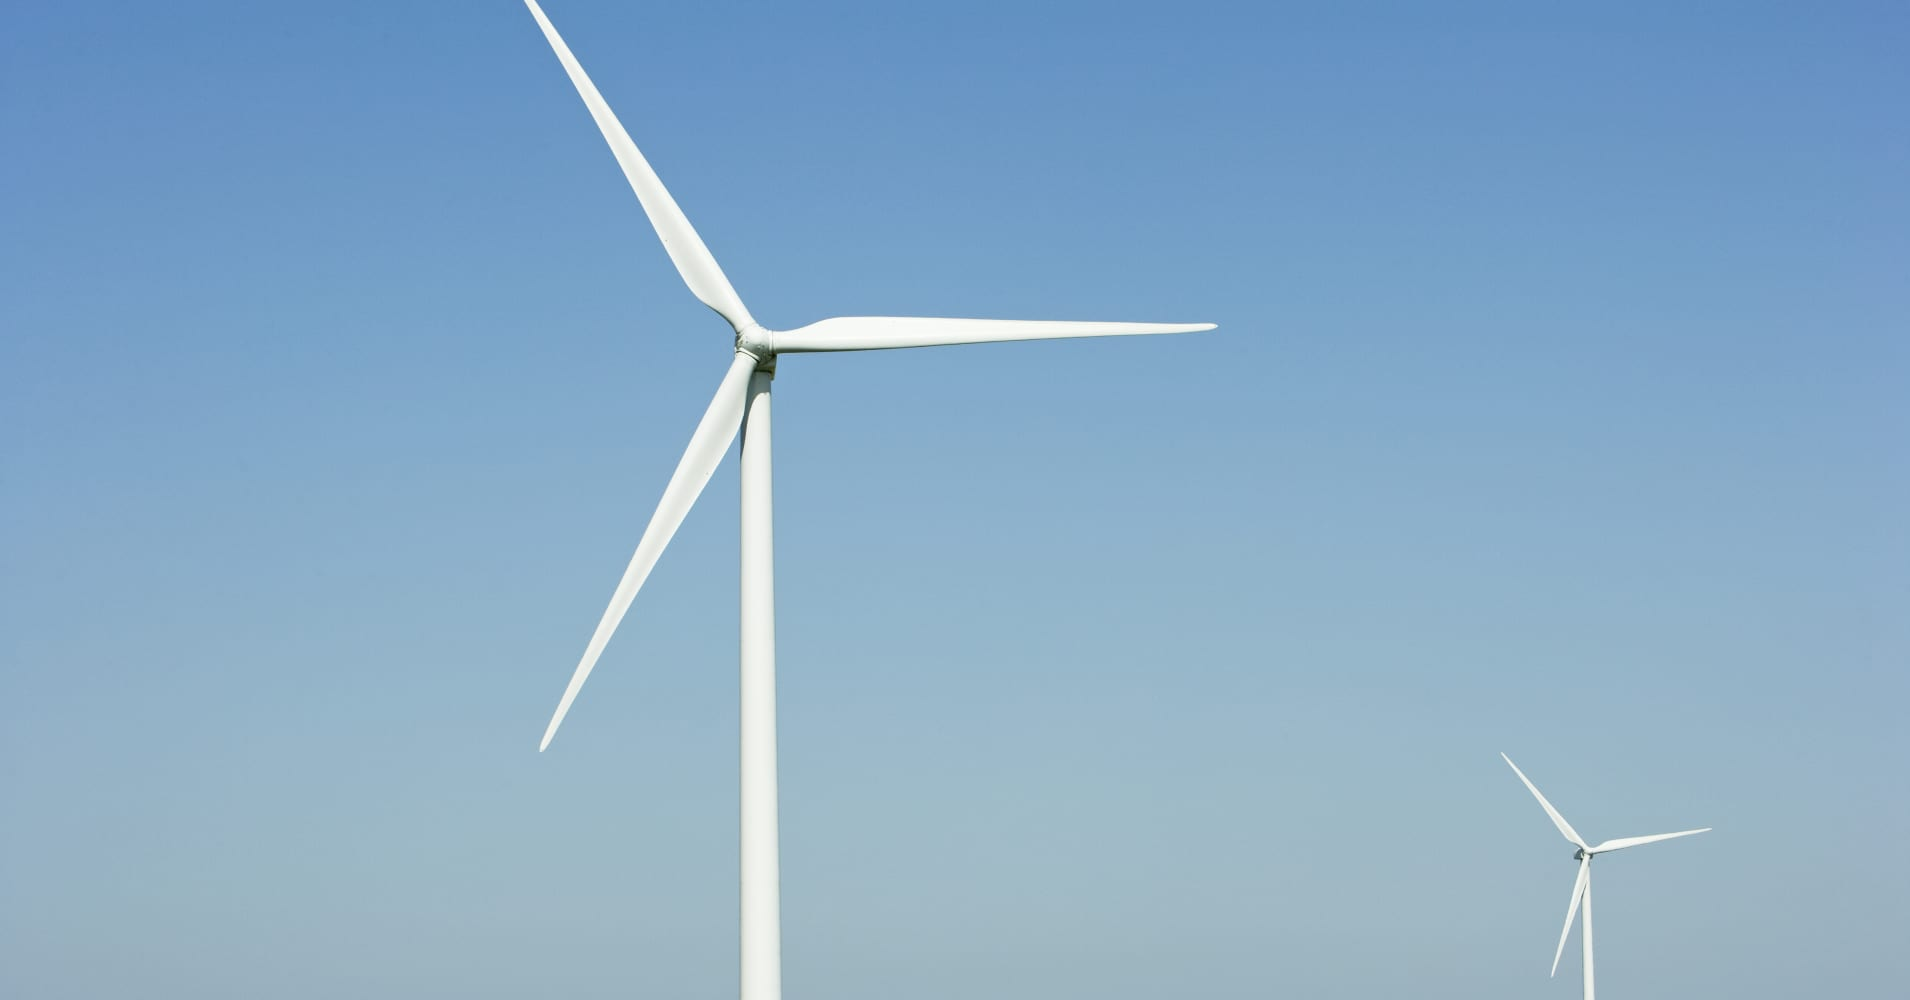 Scottish Power goes green, set to produce electricity from wind power